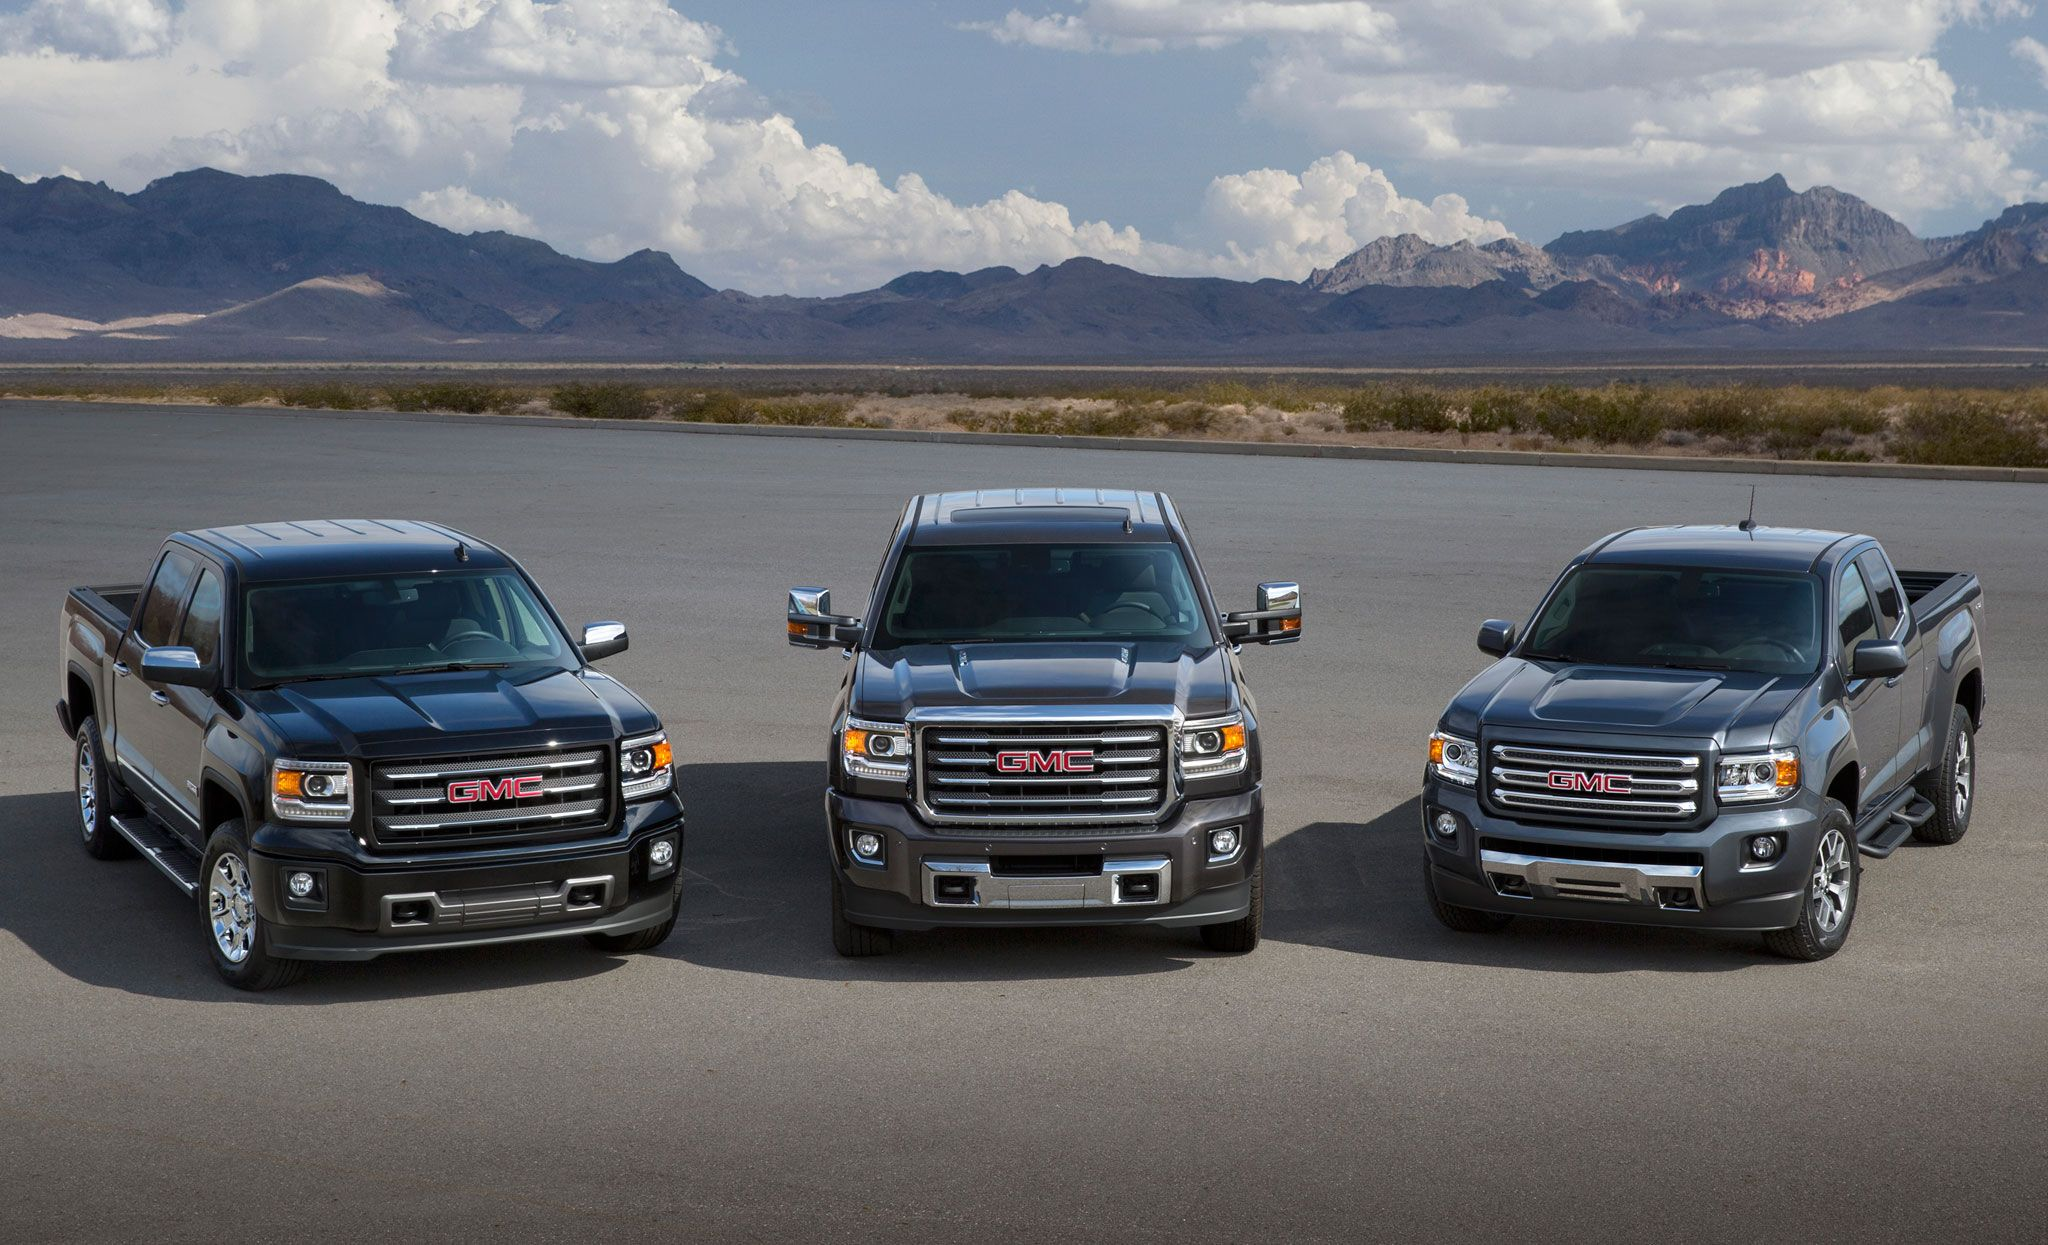 2015 Gmc Sierra hd all terrain with Sierra and Canyon